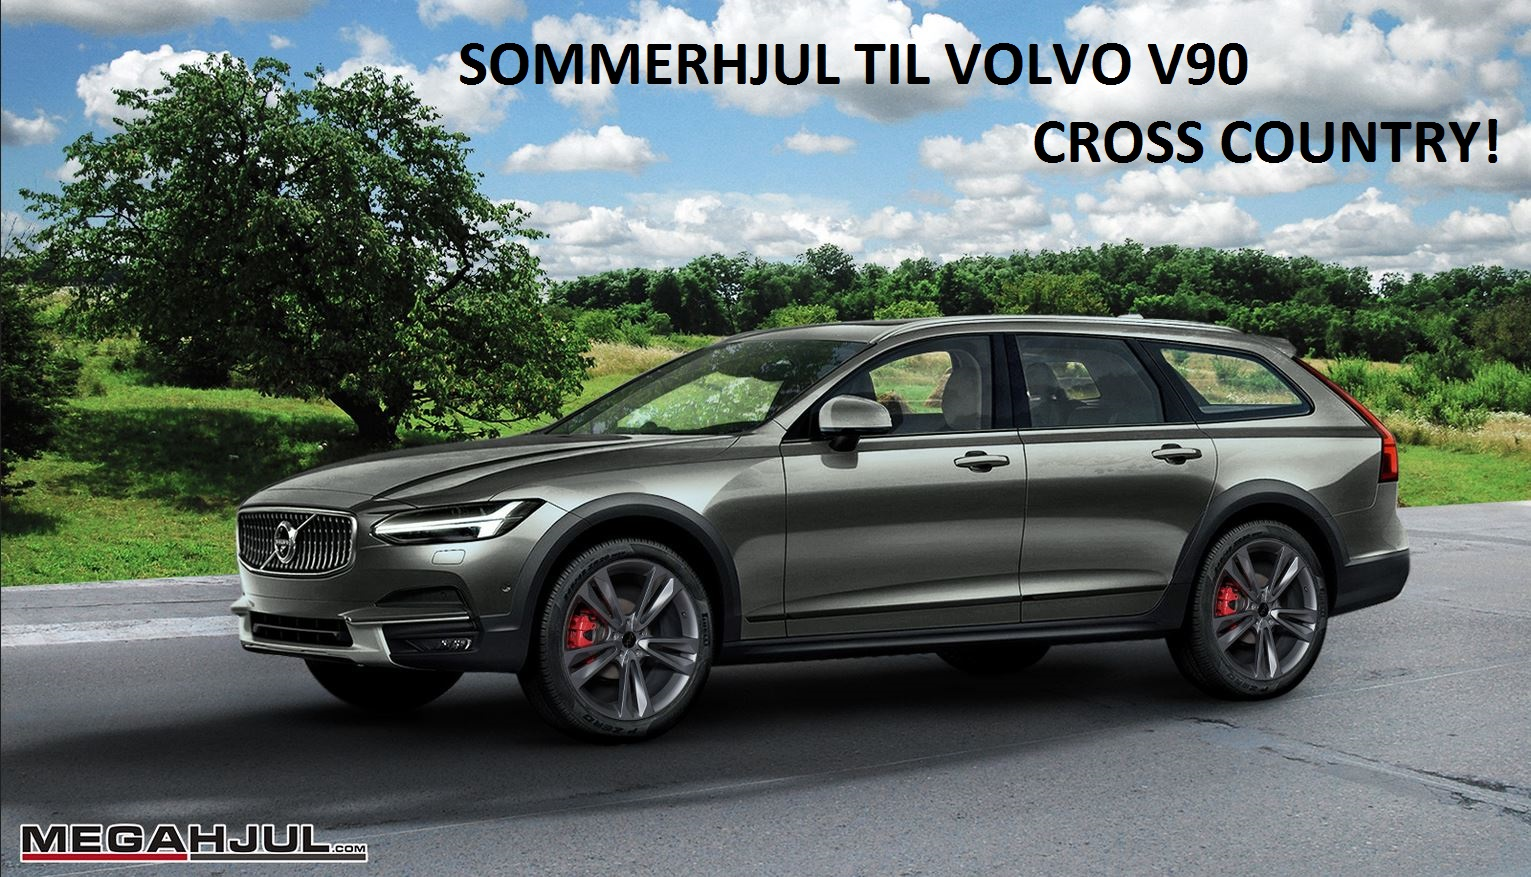 sommerhjul-til-volvo-v90-cross-country